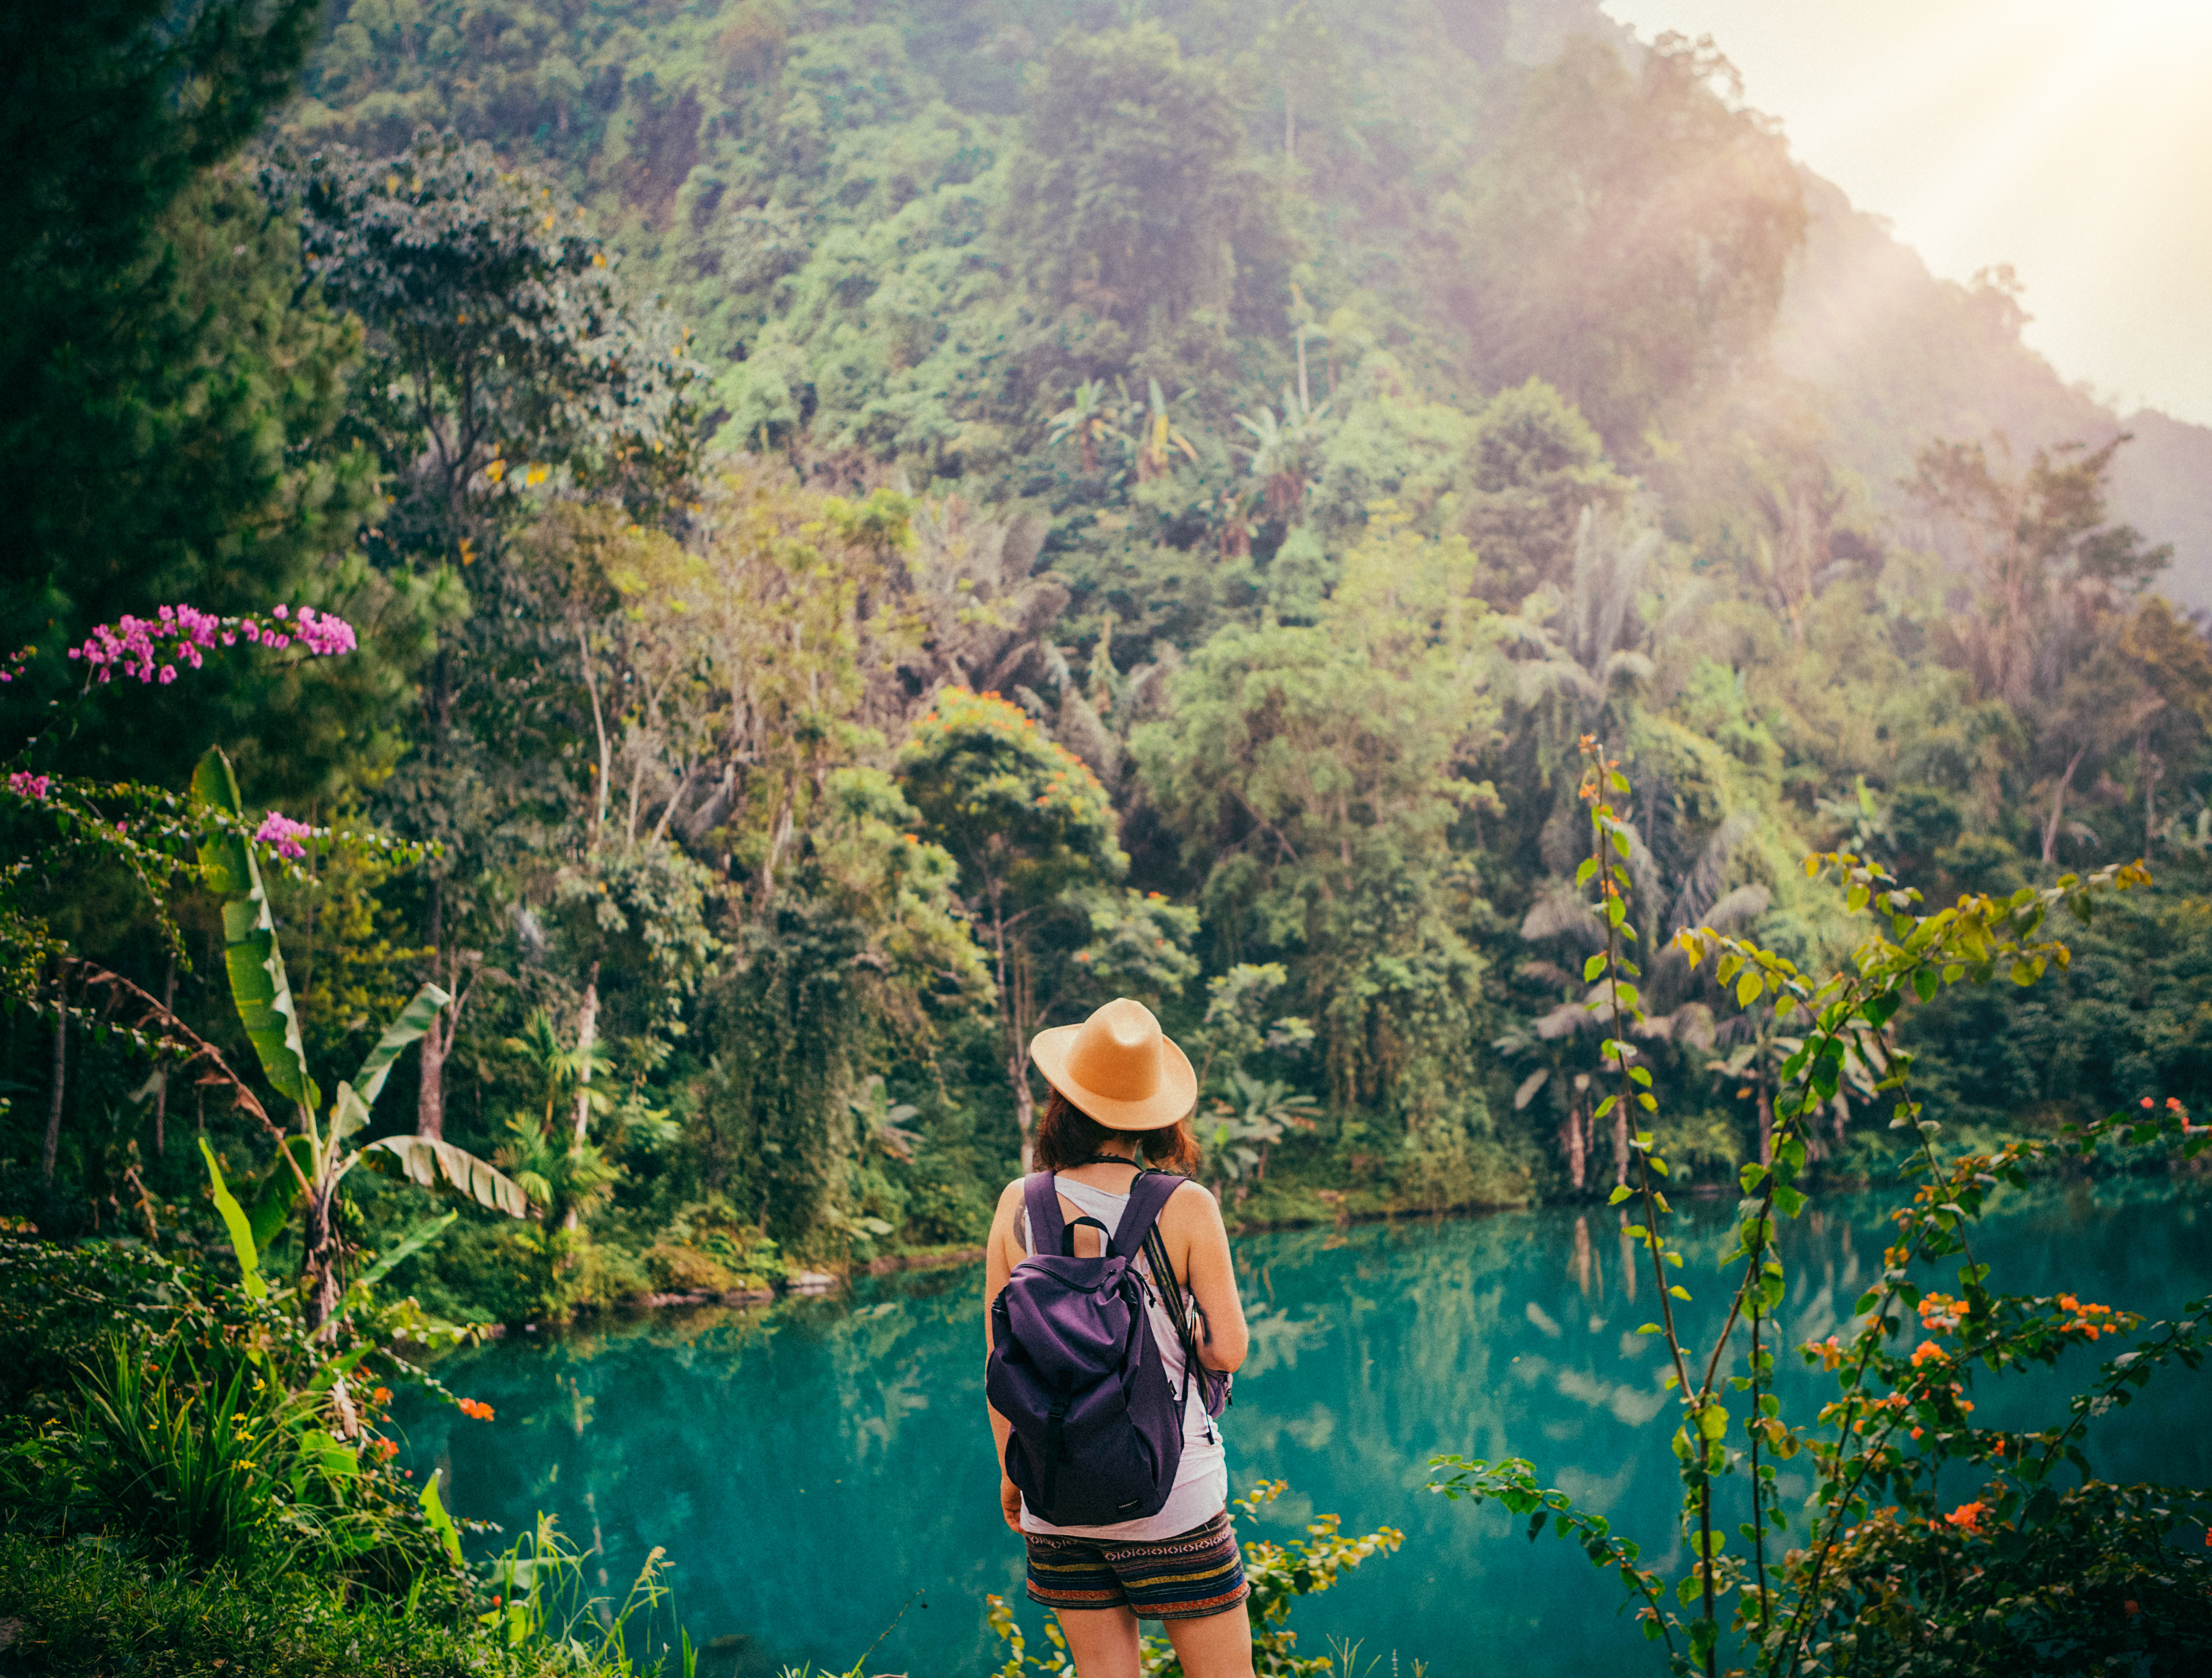 admiring indonesian jungle lush green plants water hat backpack next to waterfall tips java island